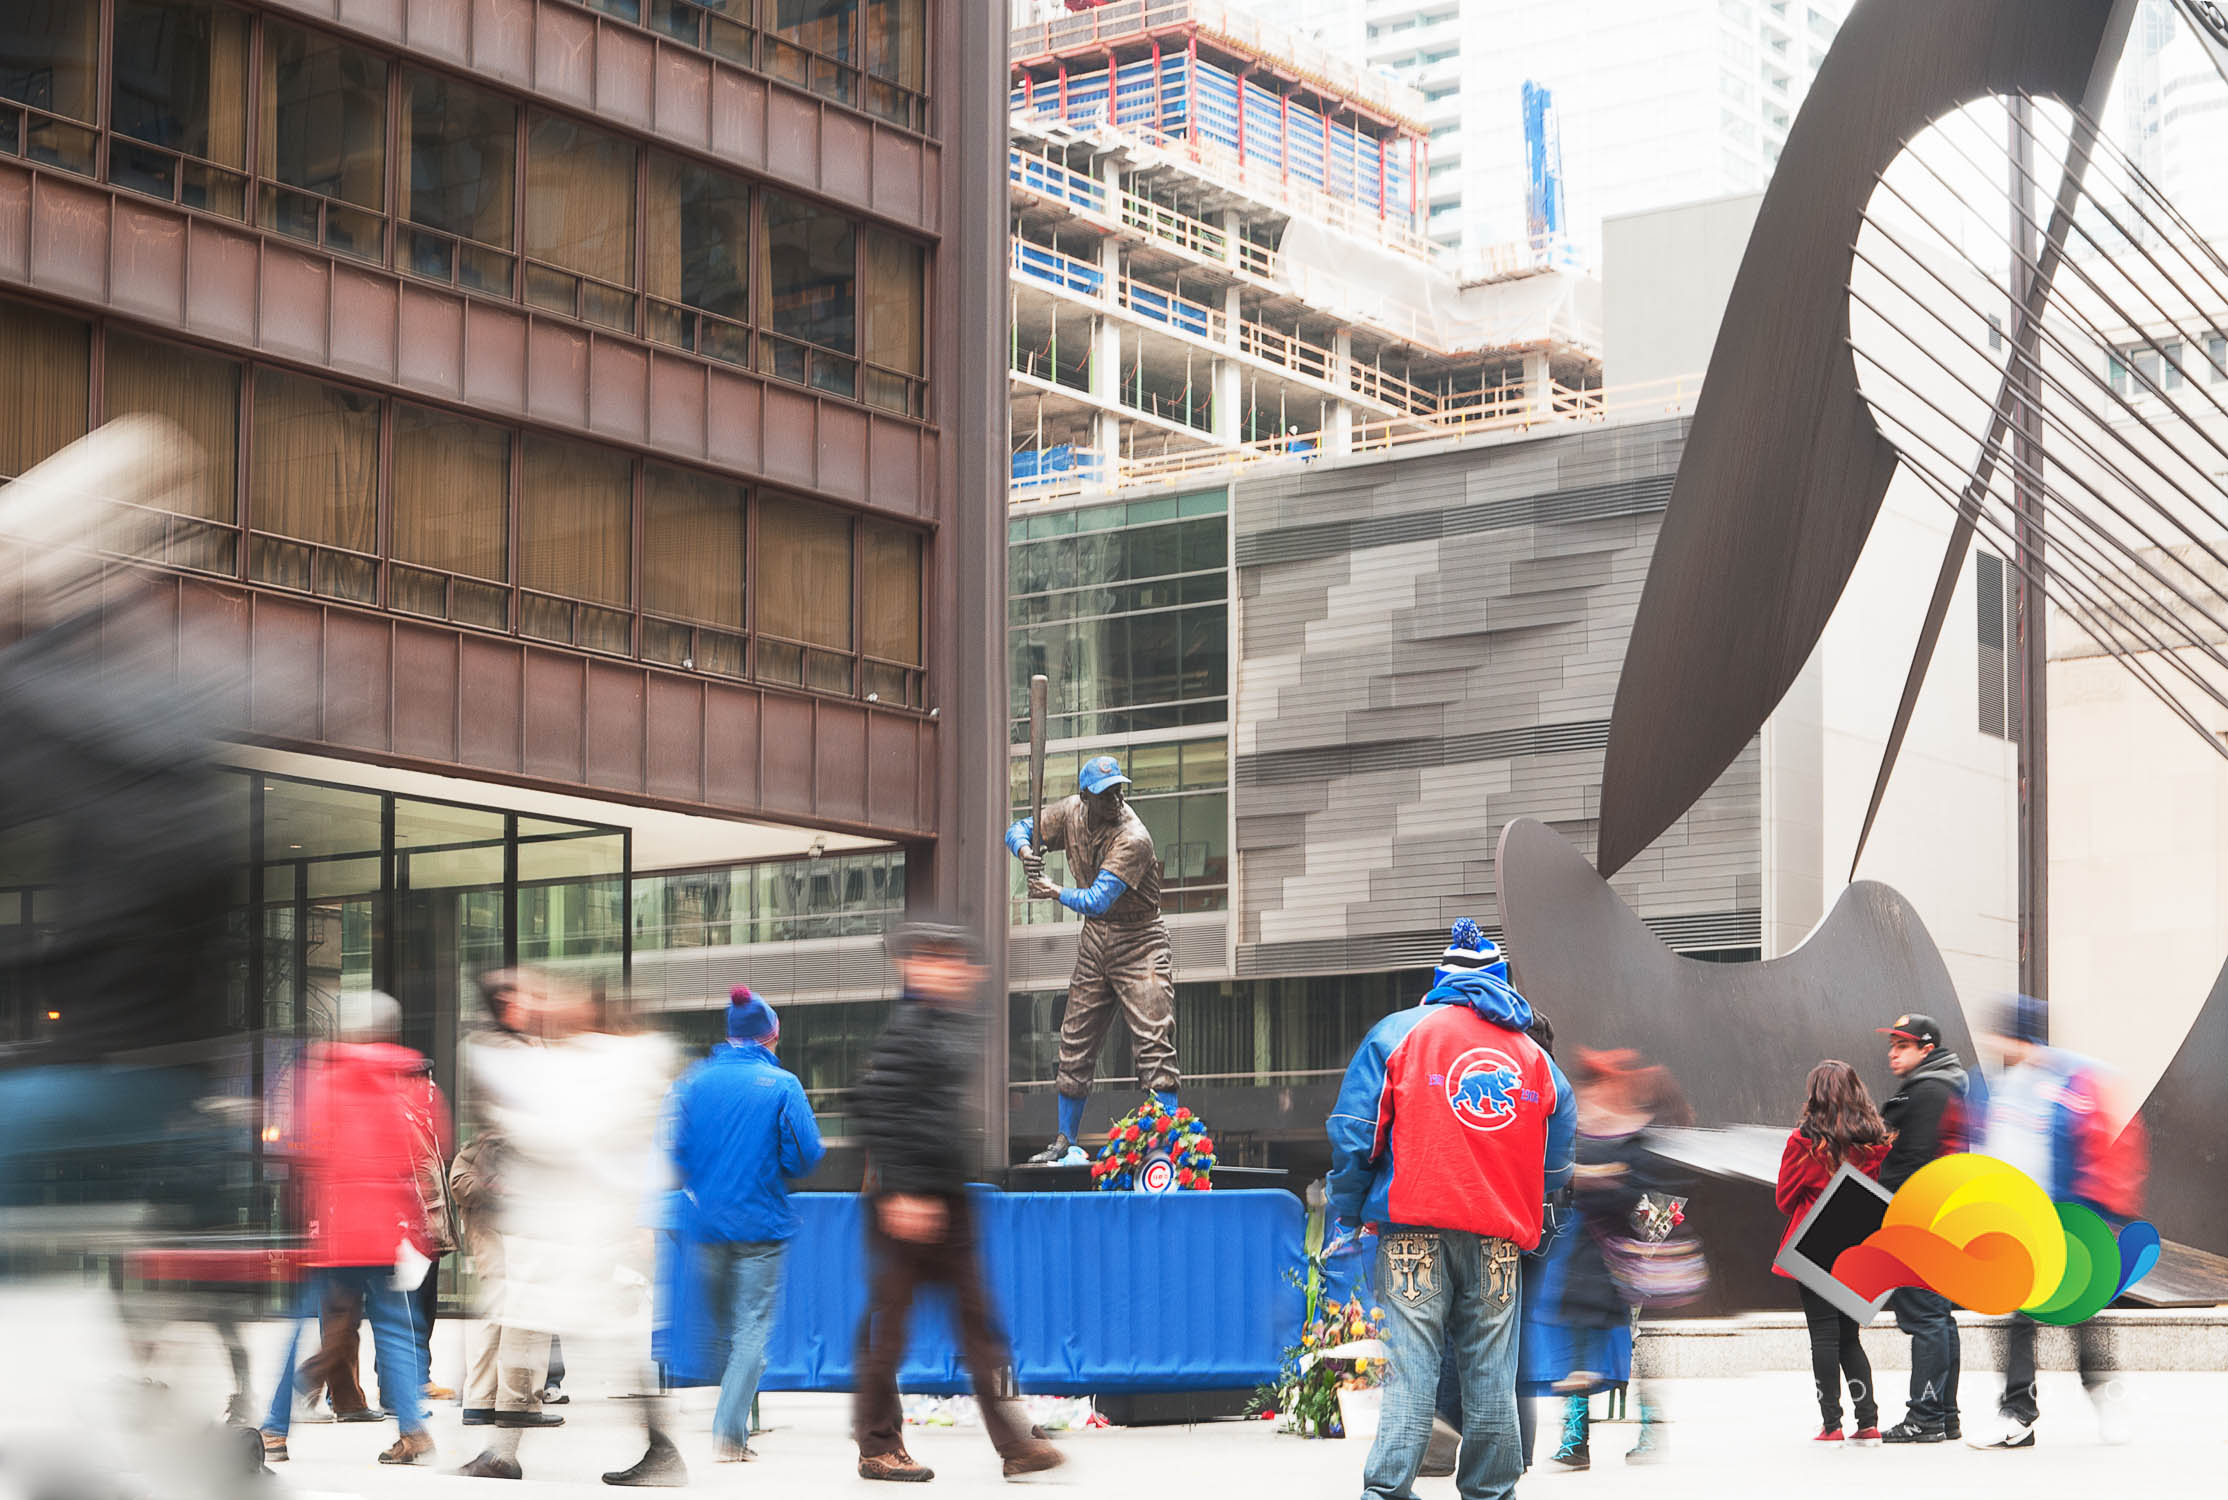 Ernie Banks Tribute in Downtown Chicago; ©Sosaphoto2015